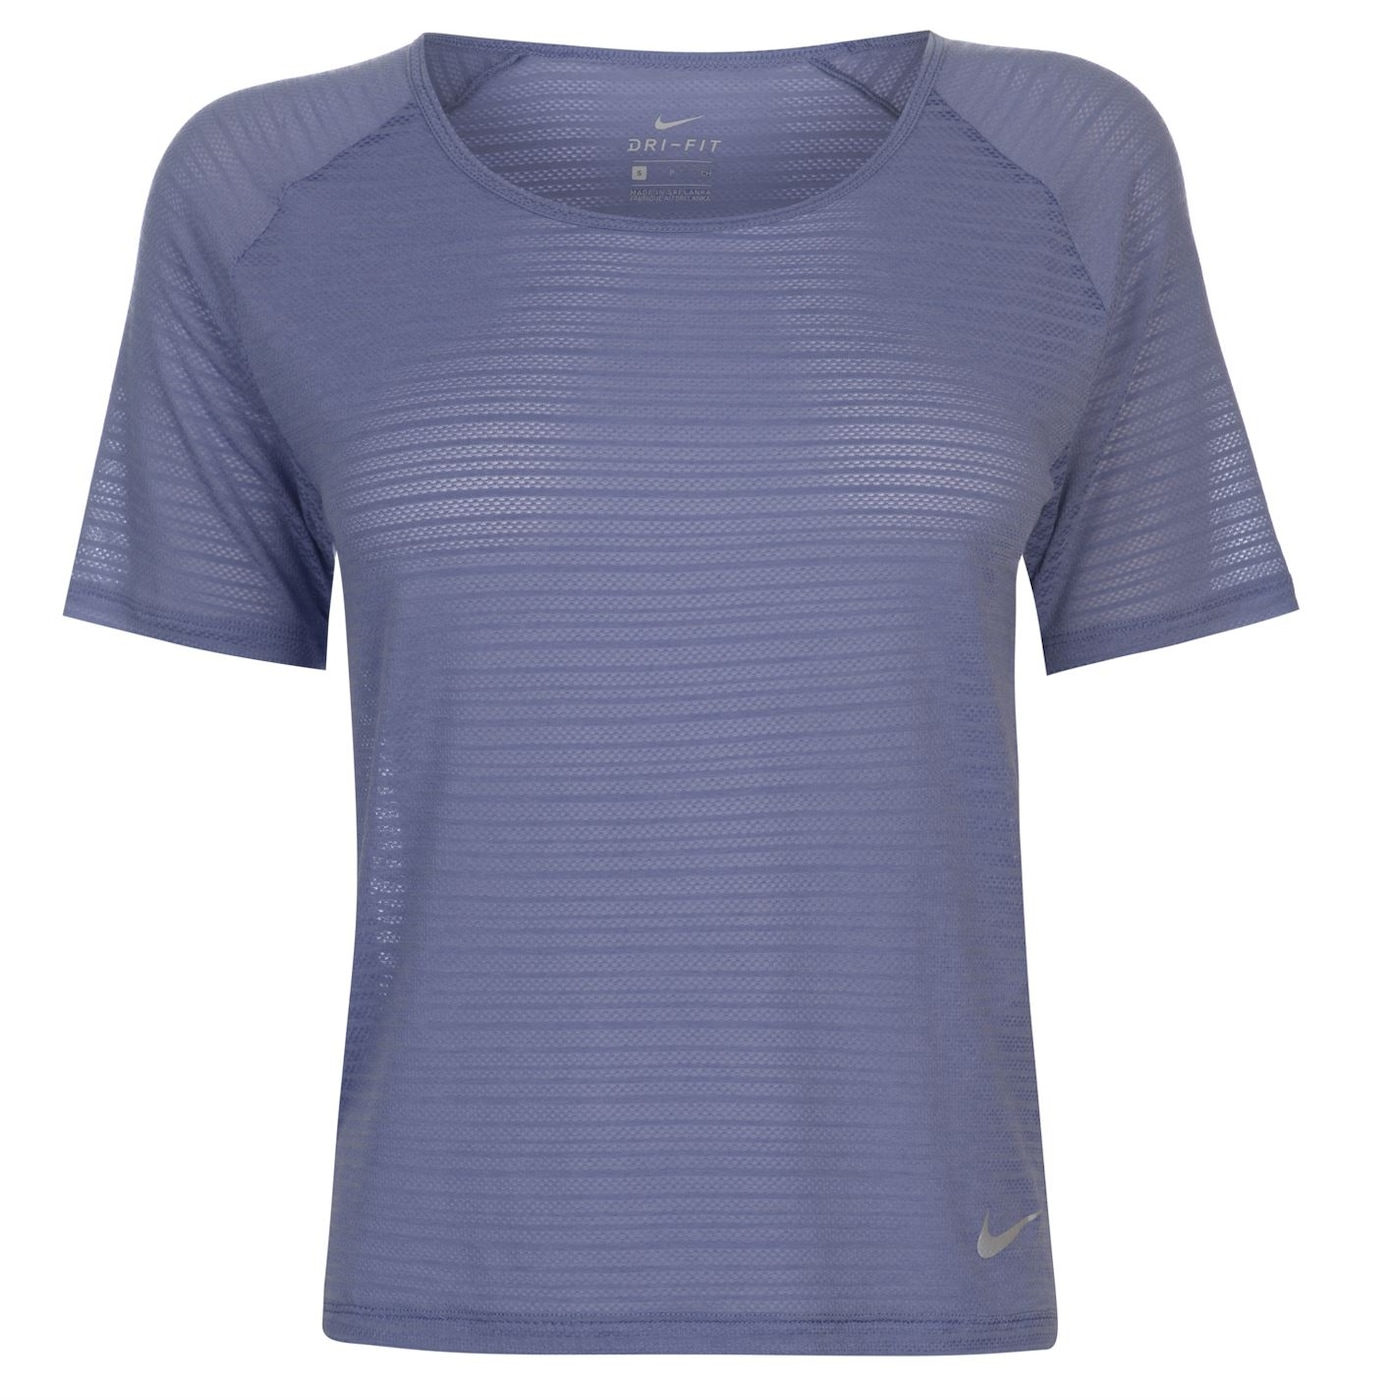 Triko Nike Miler Breathe Short Sleeve Top dámské